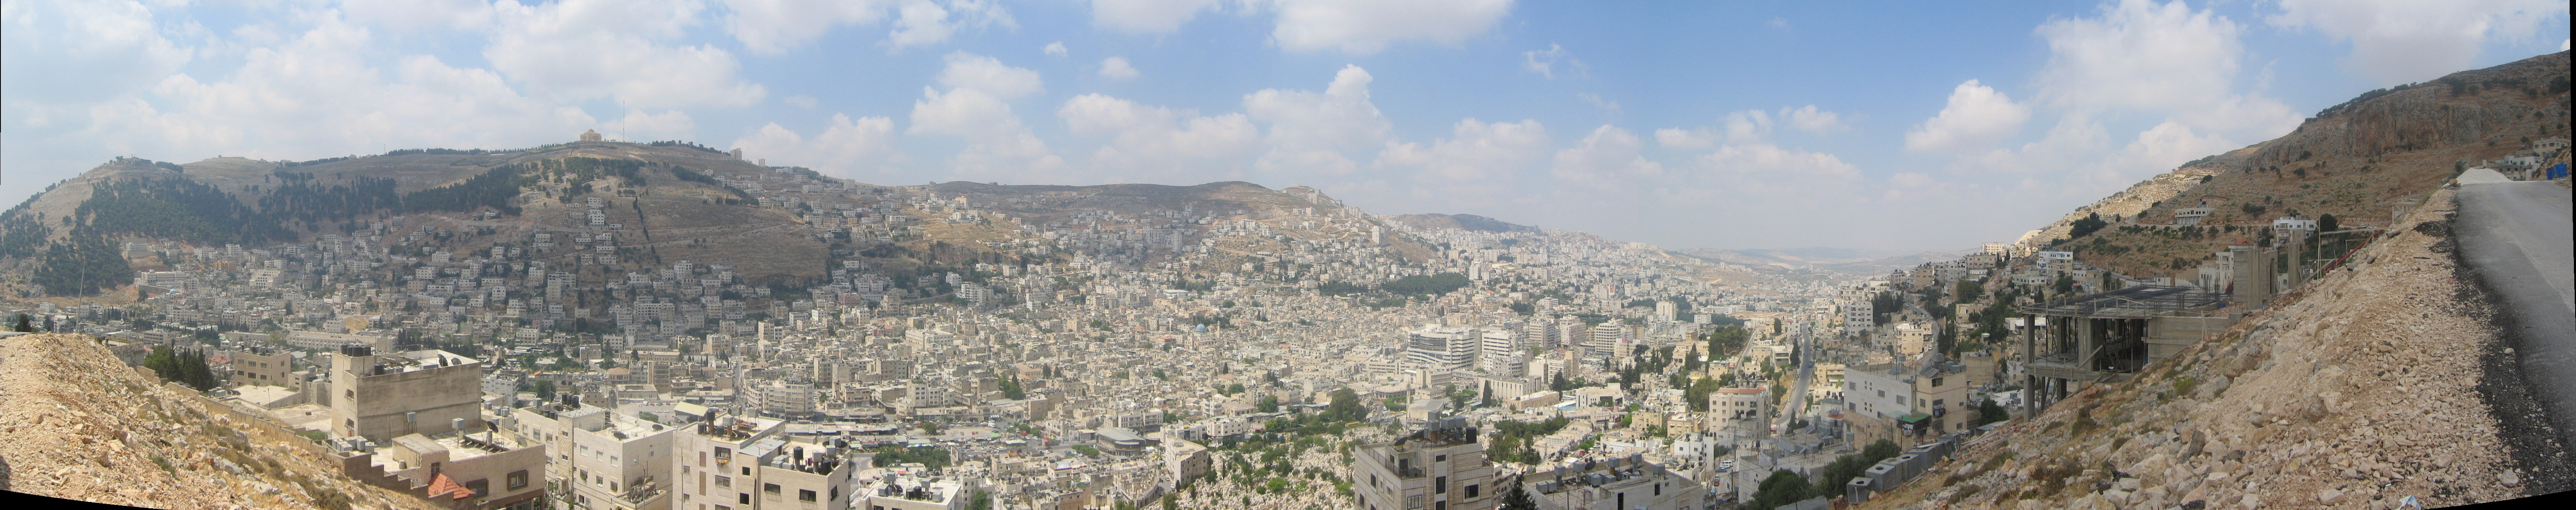 Nablus, showing Mount Ebal (right) and Mount Gerizim (left of picture). Photo from Wikimedia Commons by uwea.